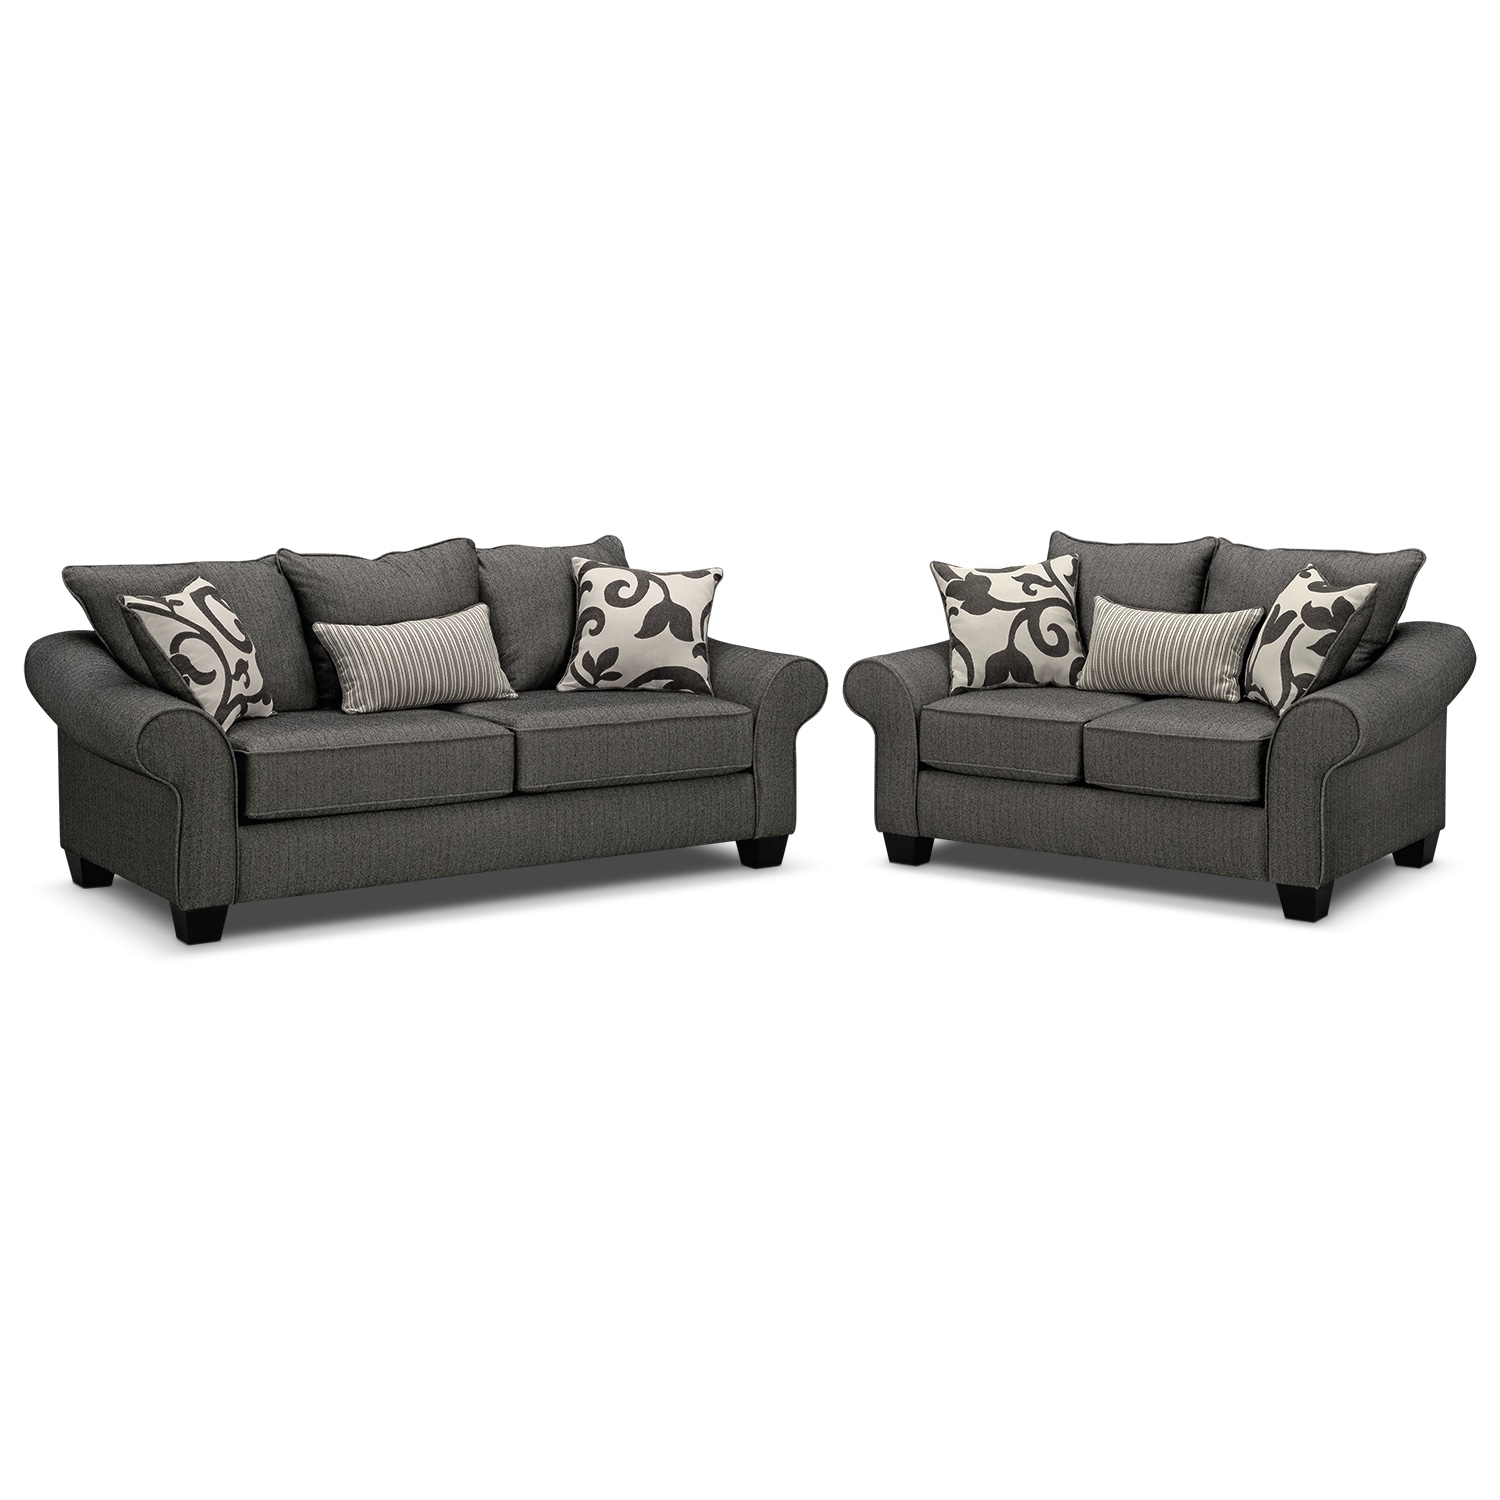 Colette Full Innerspring Sleeper Sofa And Loveseat Set Gray Value City Furniture